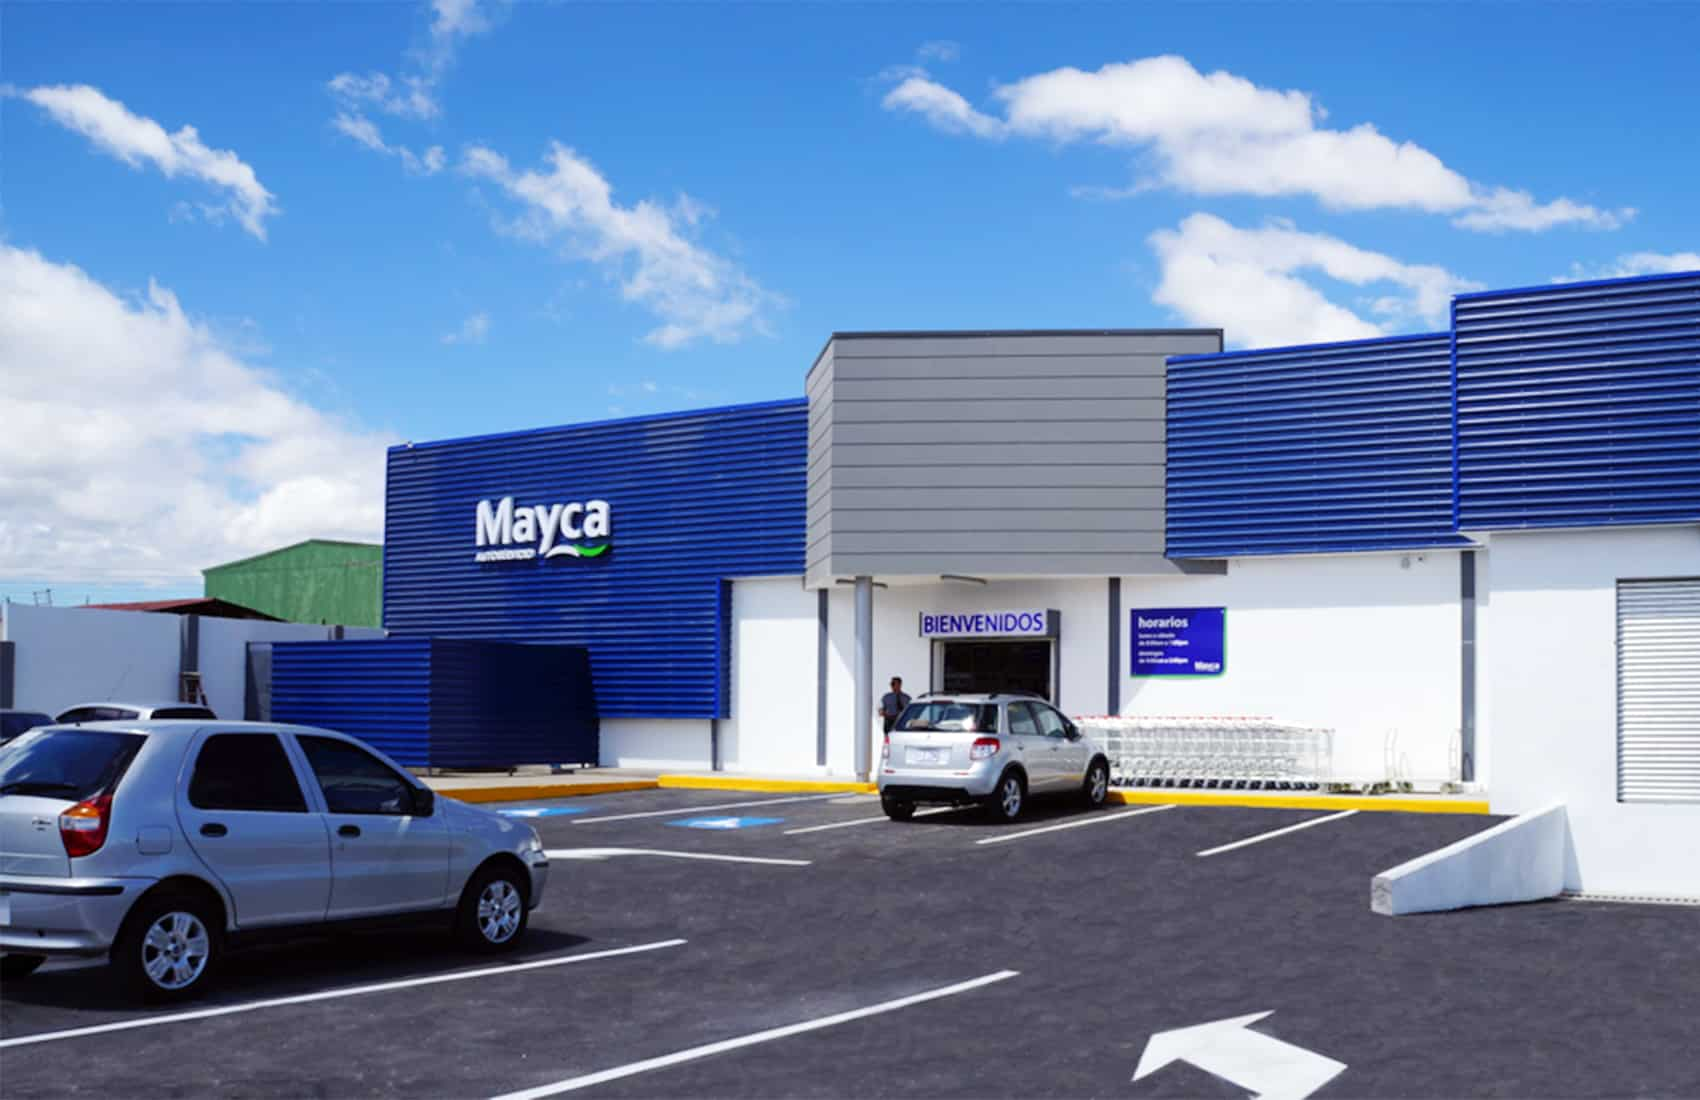 Mayca retail location